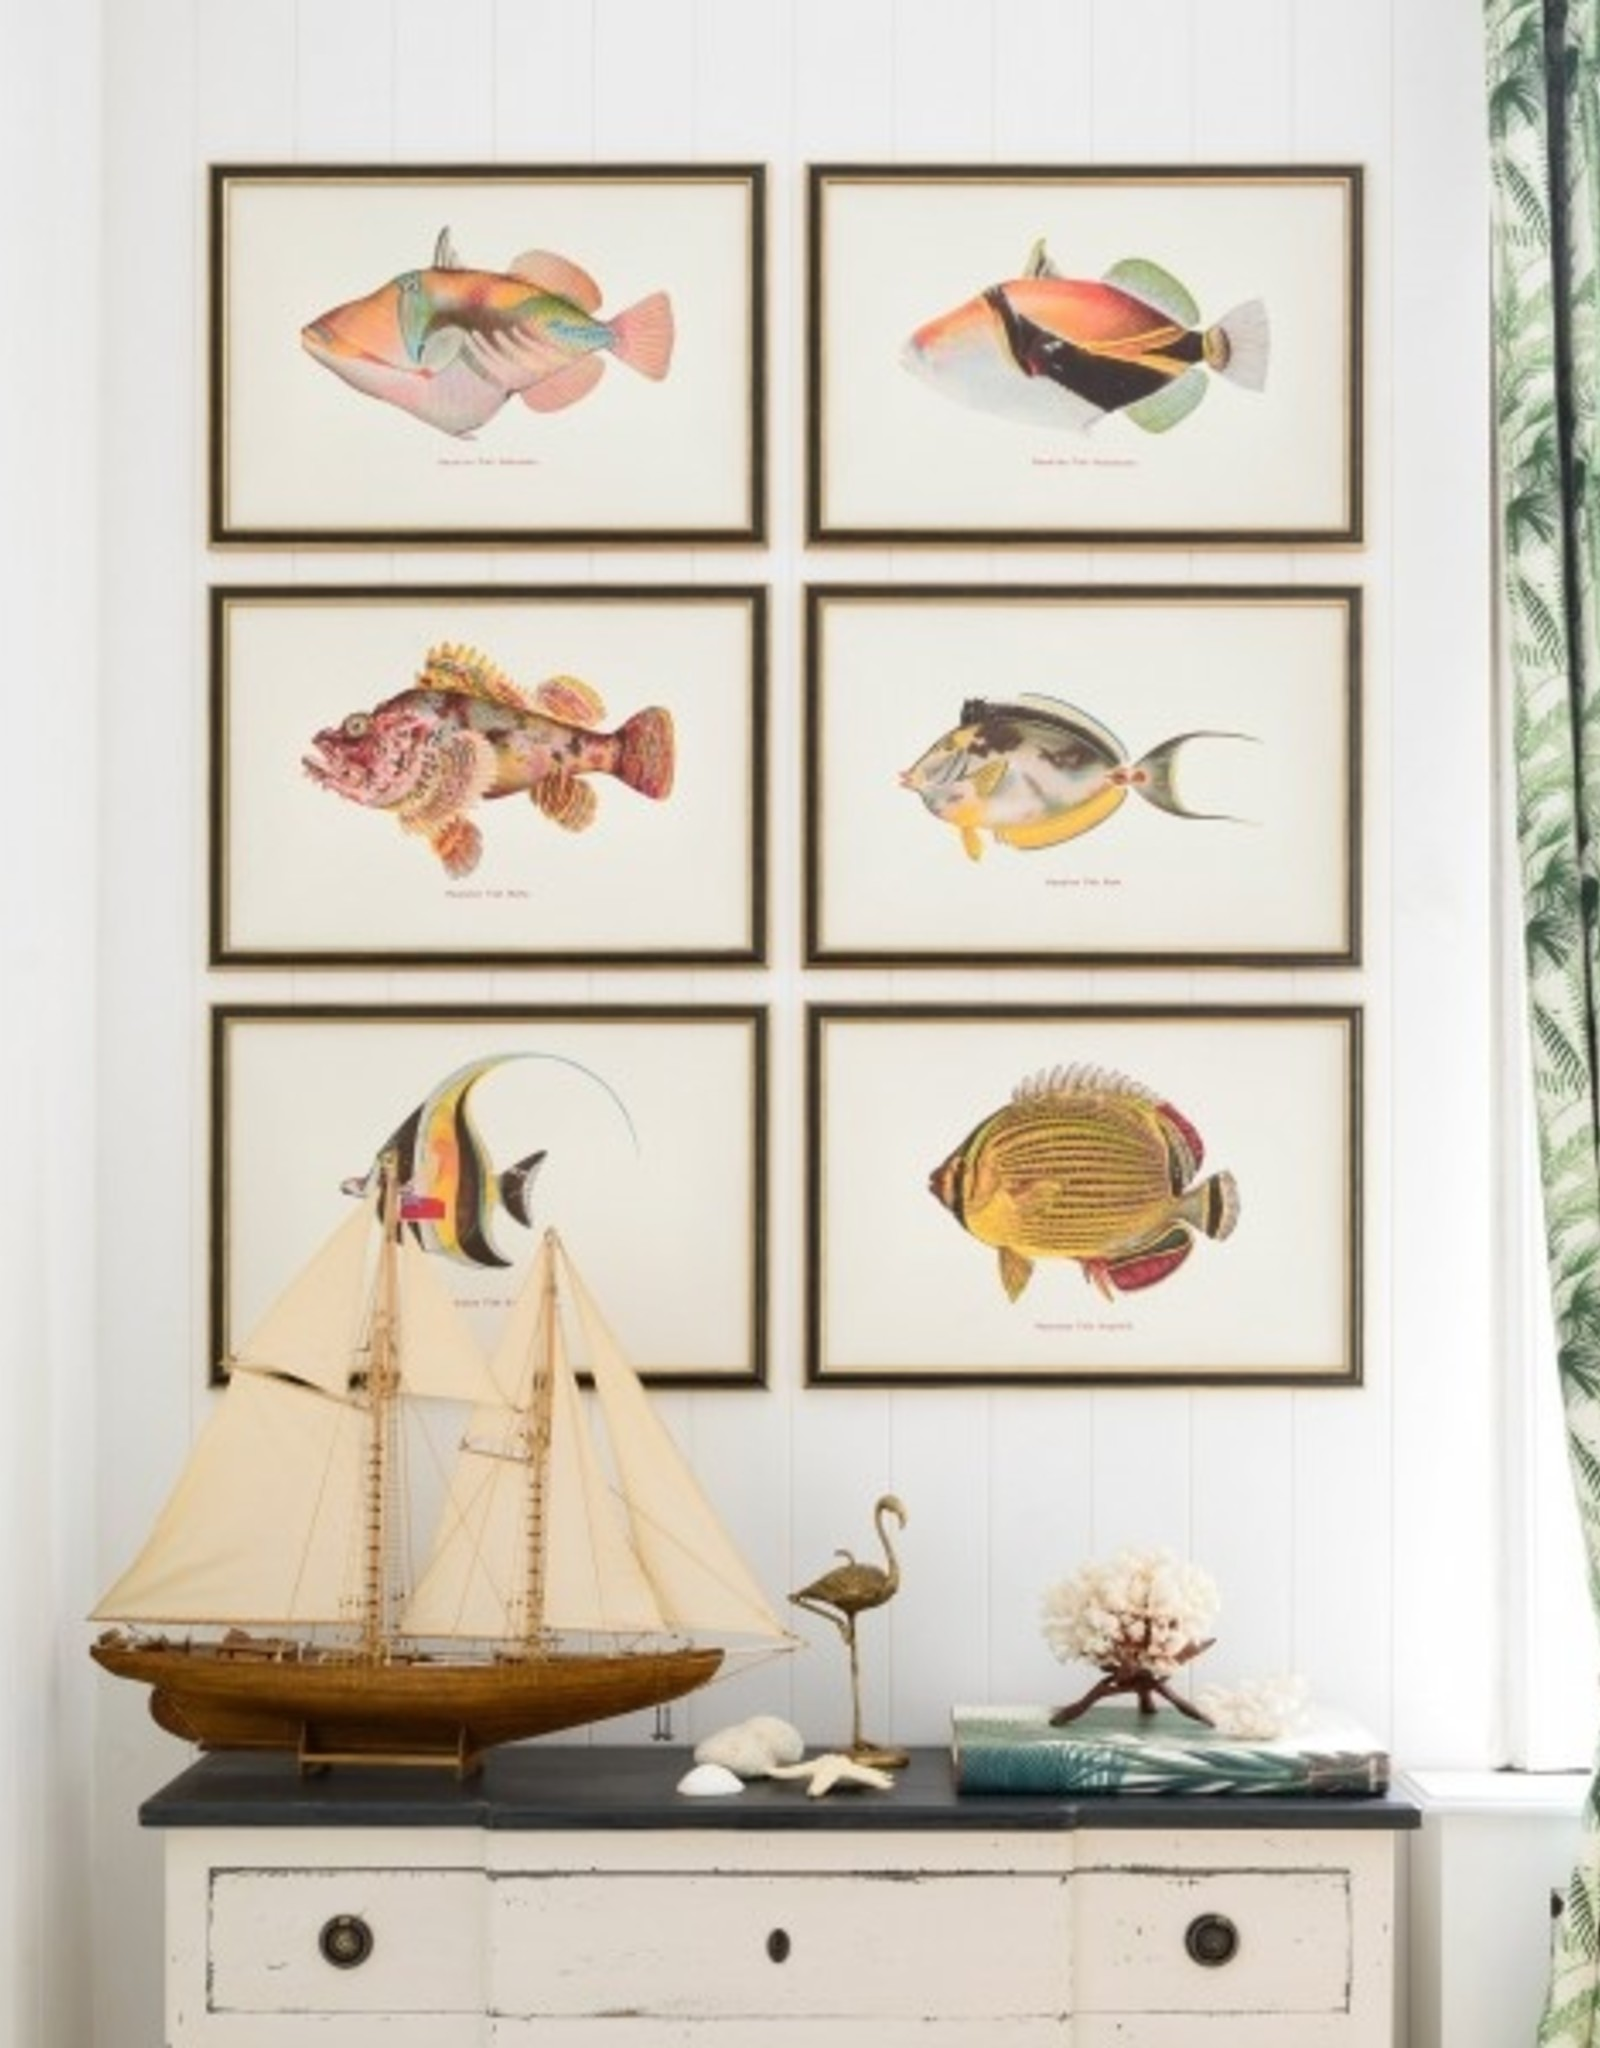 Mind the Gap Framed Art 60 x 40 cm - Fishes of hawaii - Nohu Fish